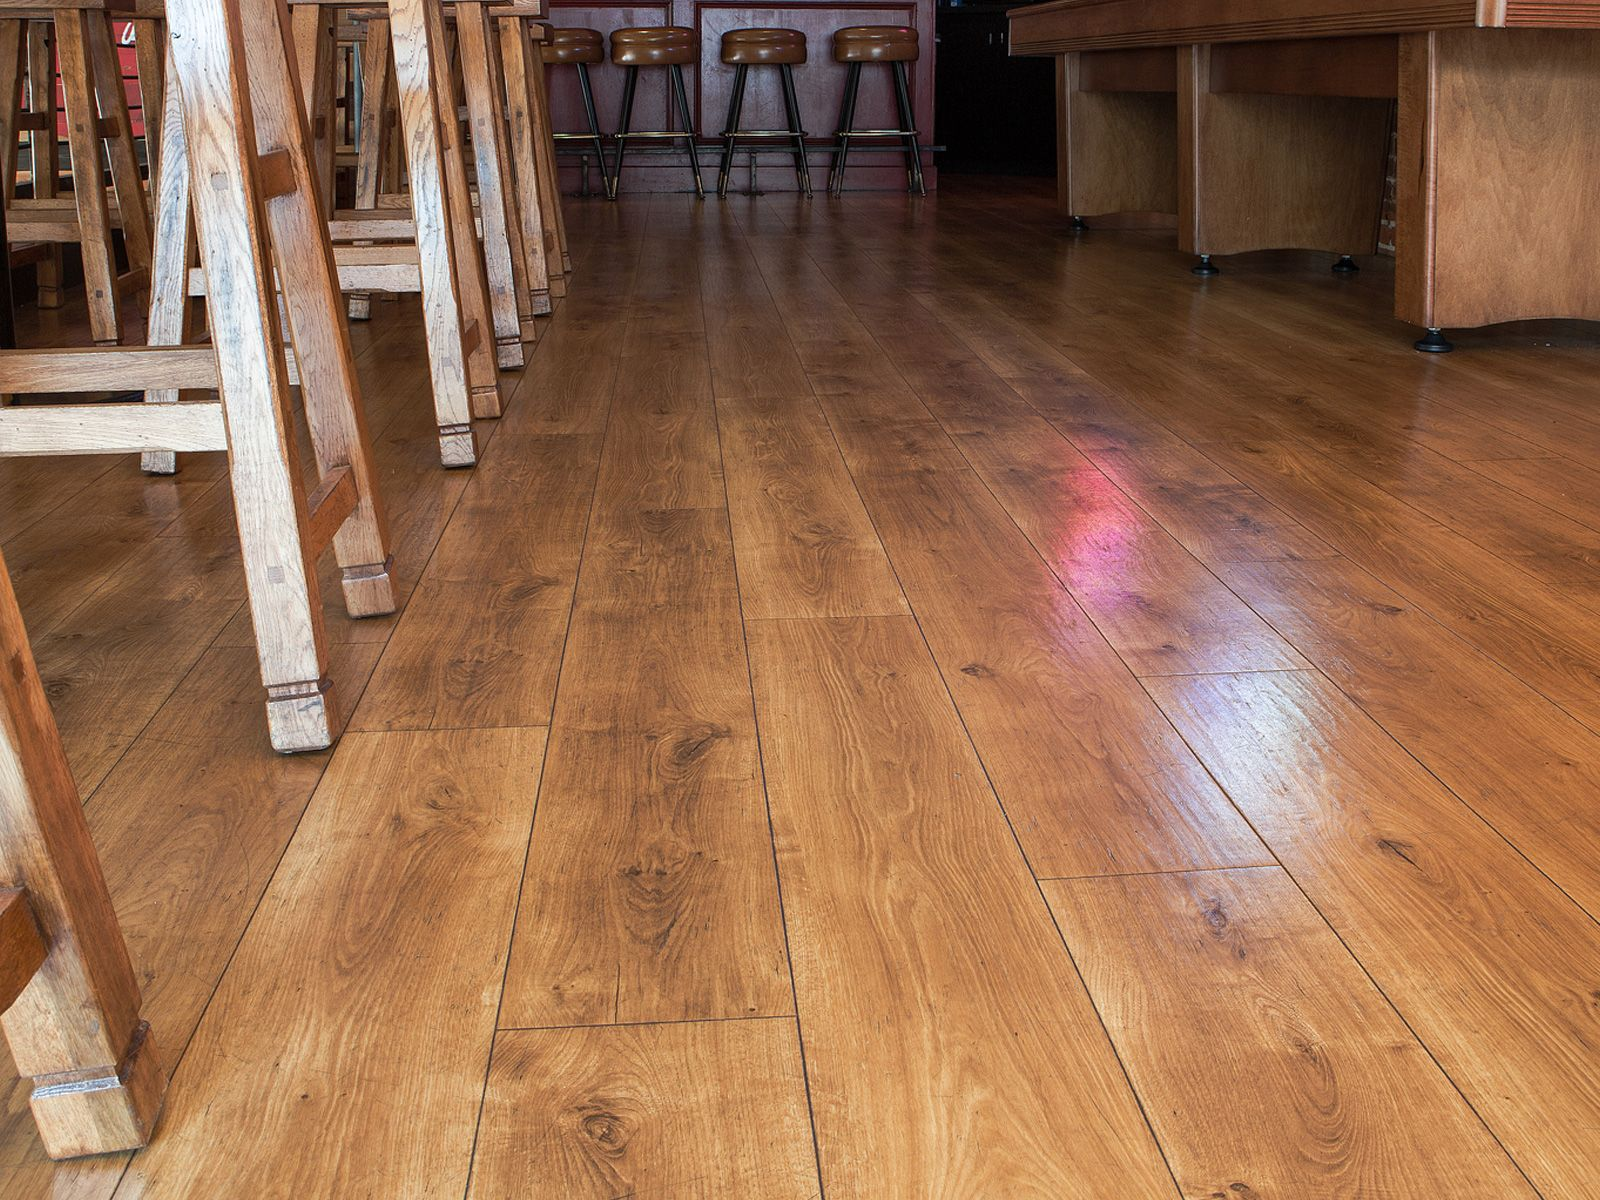 Project Gallery Vinyl Deluxe Olde Dutch Hardwood Flooring Wide Plank Flooring Nj New Jersey